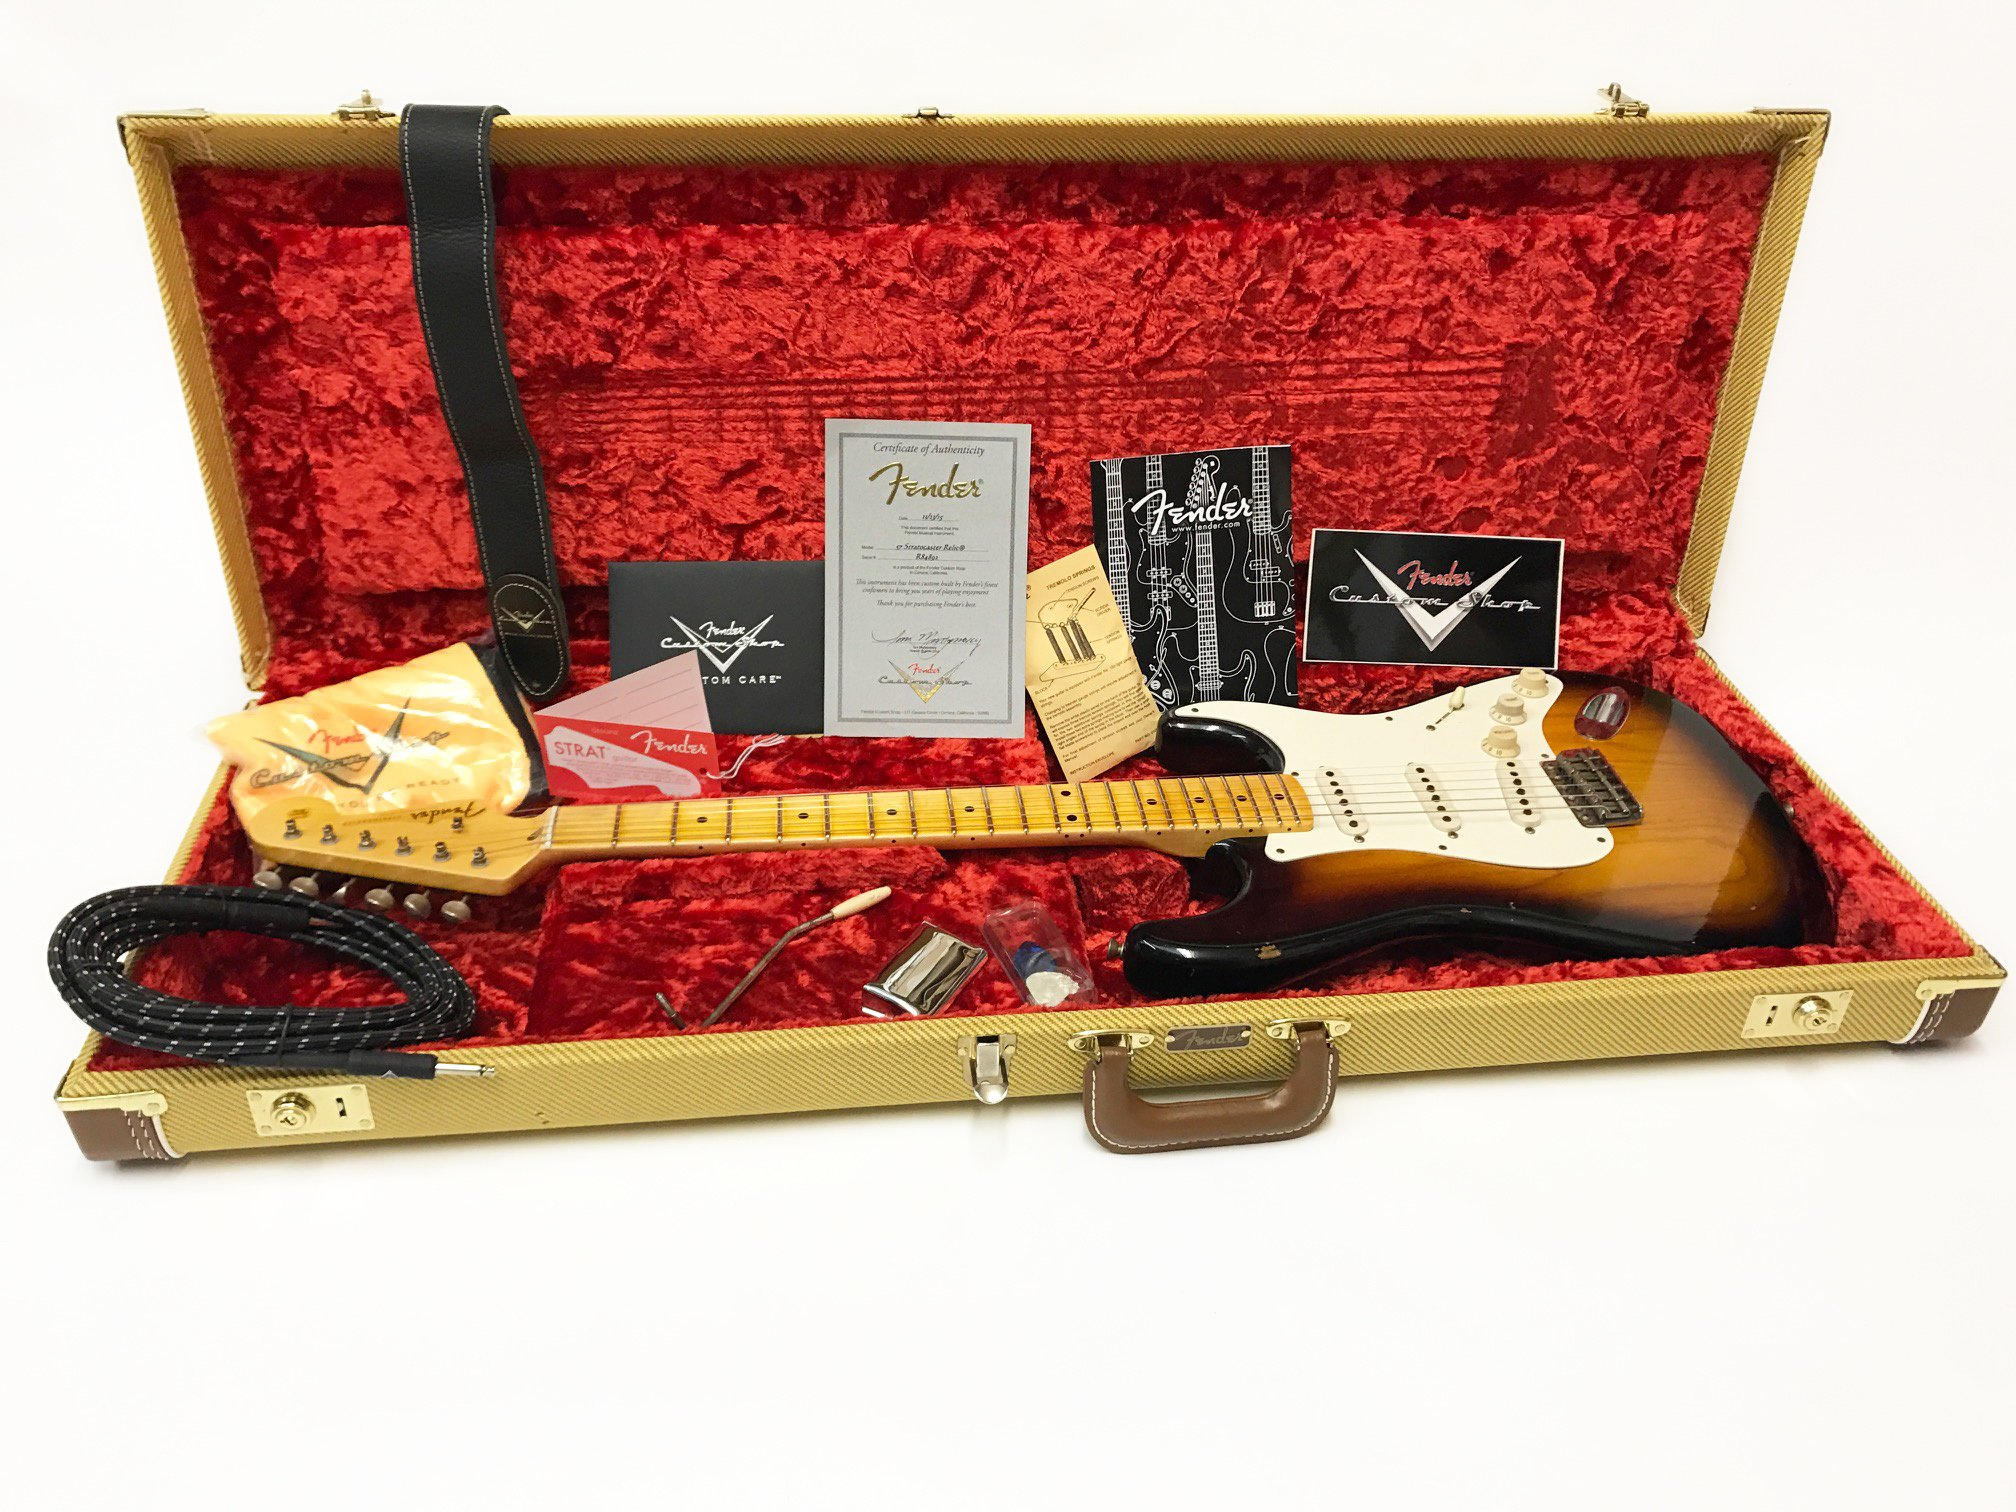 Fender 57 relic strat John Cruz Tone machine